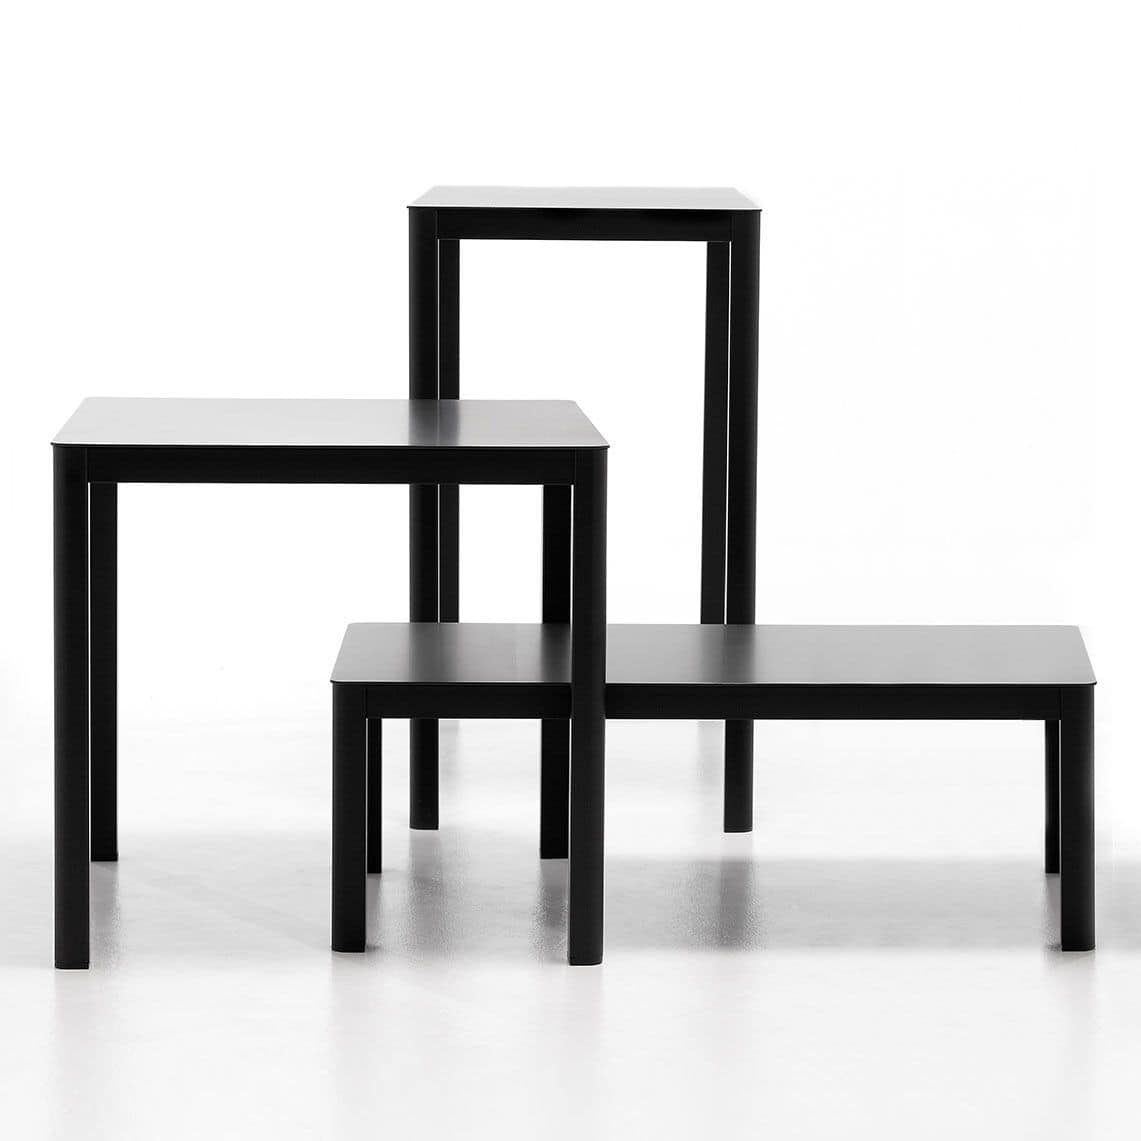 kleiner tisch f r die horeca bereiche in aluminium und hpl idfdesign. Black Bedroom Furniture Sets. Home Design Ideas